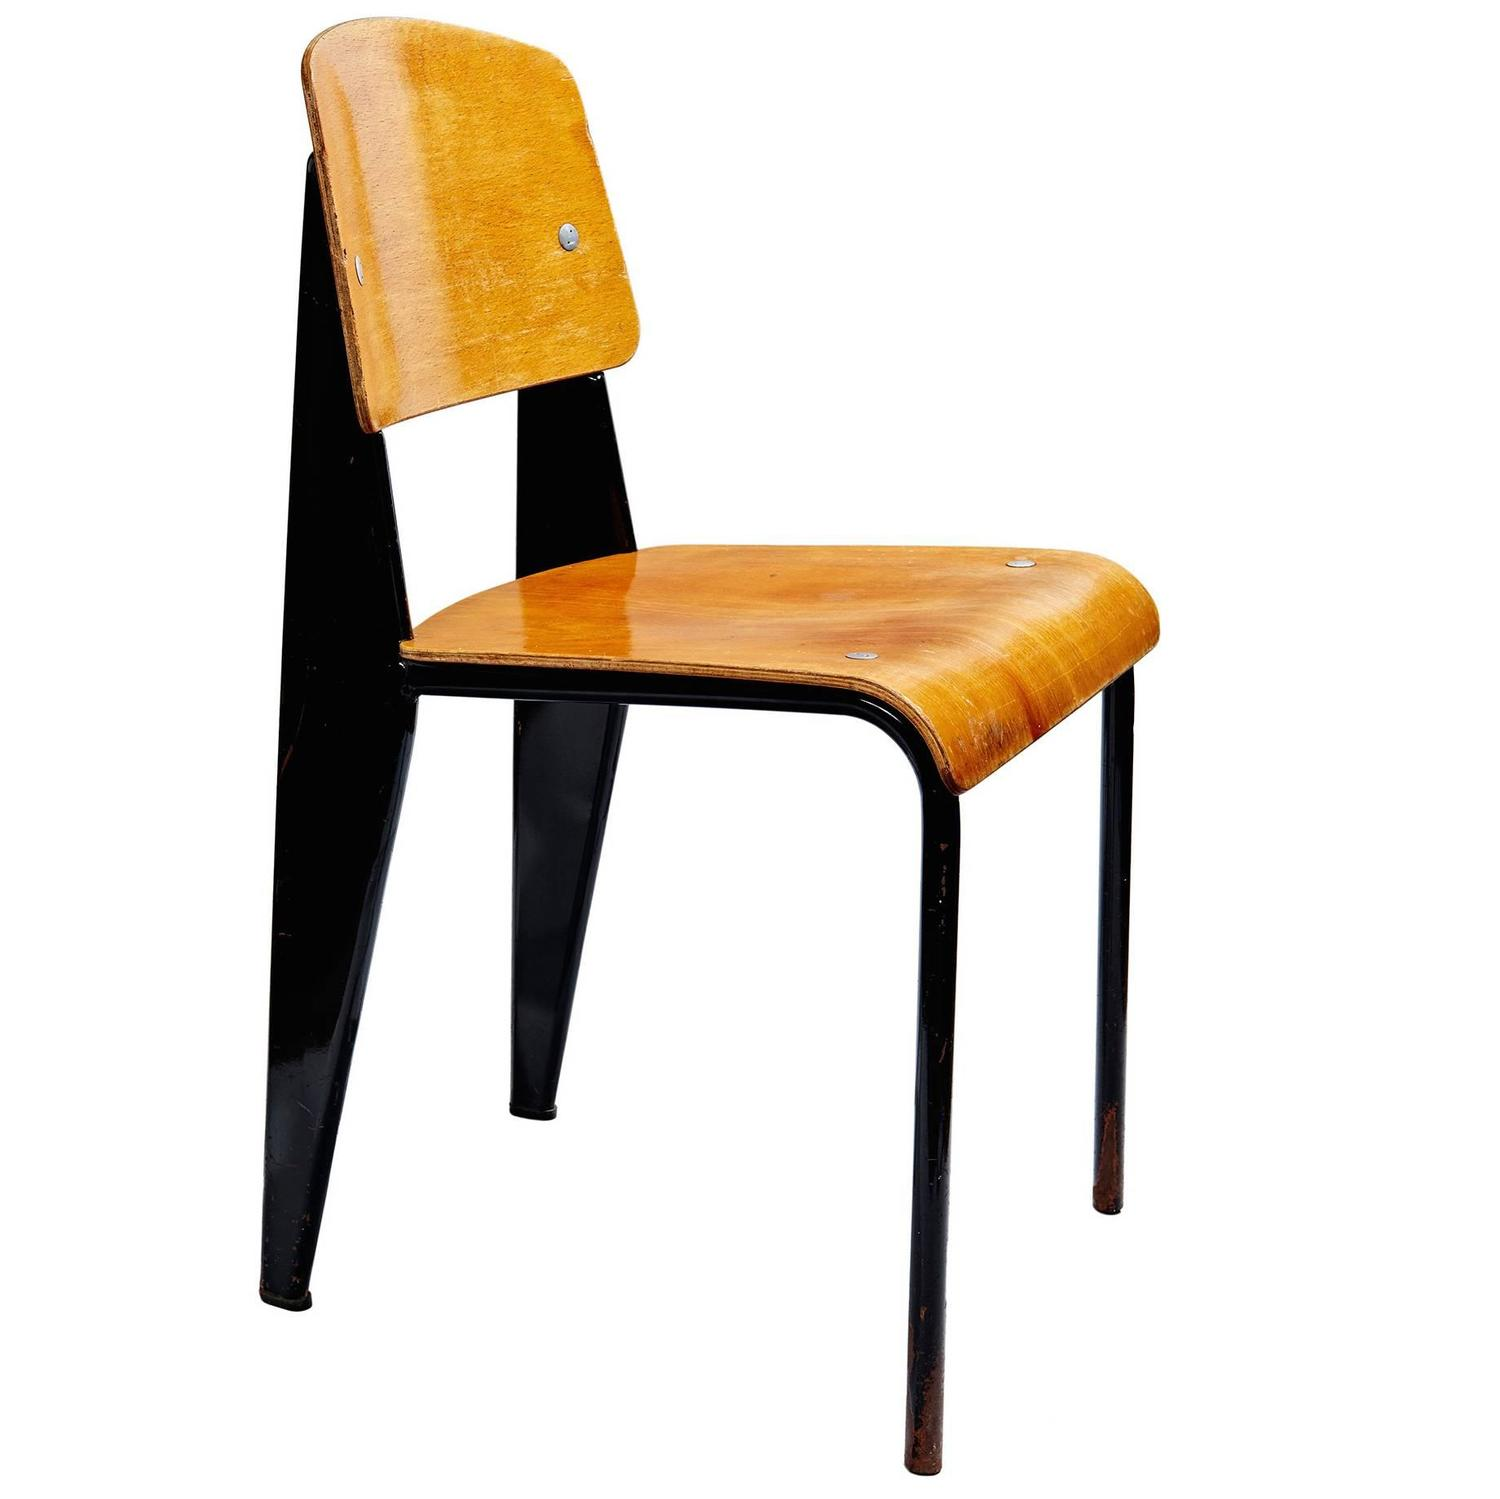 Chaise standard by jean prouv at 1stdibs - Chaise jean prouve prix ...